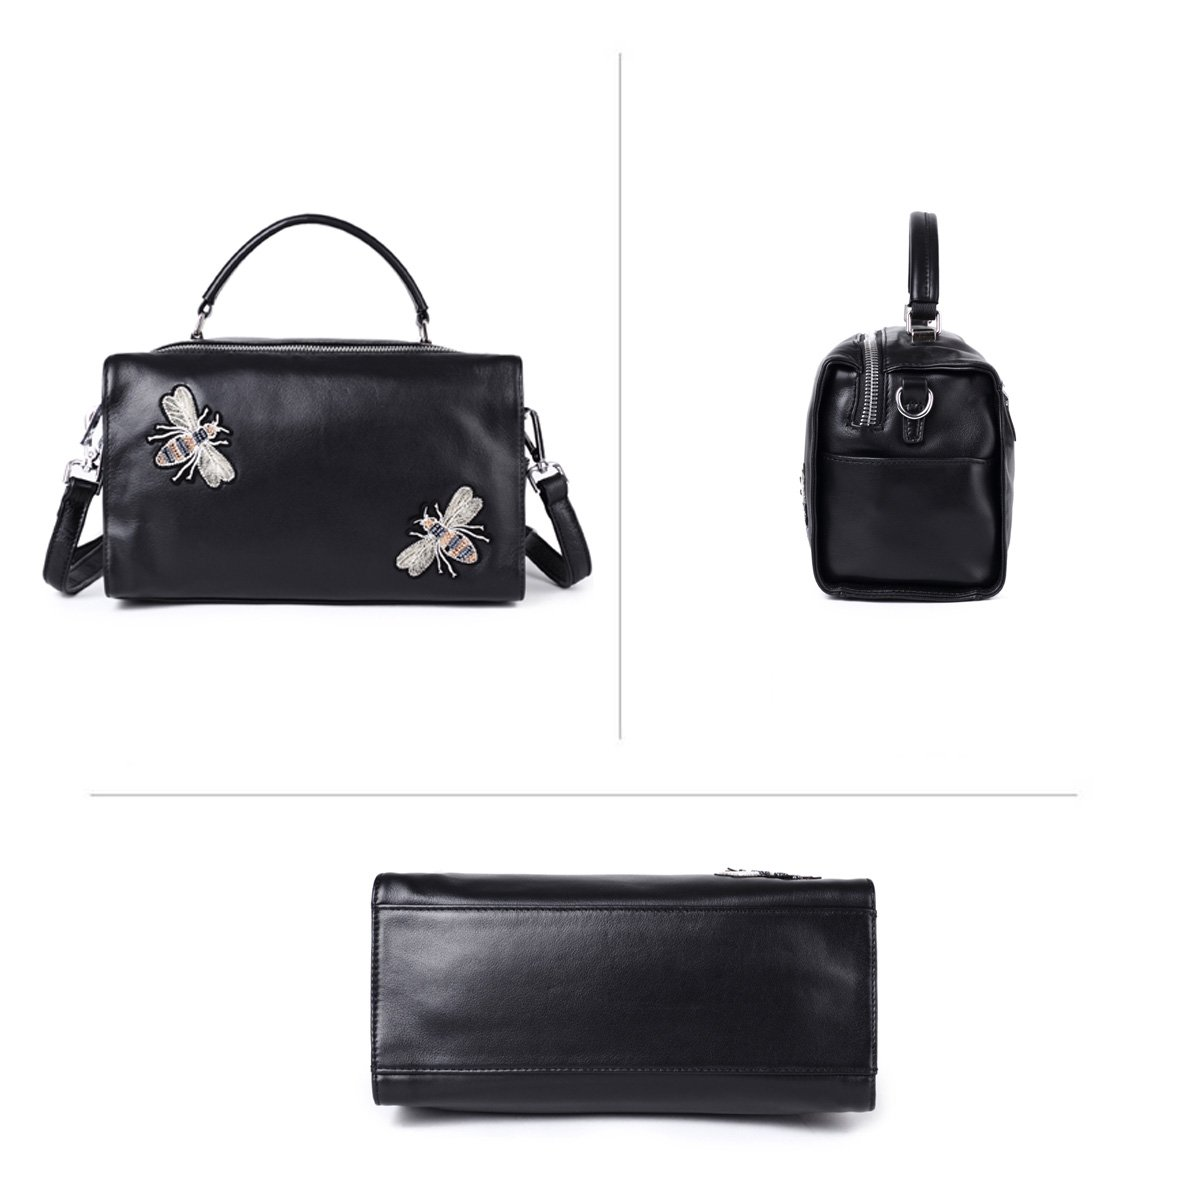 Buy Soft Real Leather Handbags for Women Punk Fashion Shoulder Satchel  Stylish Barrel Purse Black by LEASHELL Online at Low Prices in India -  Amazon.in 977e68065e